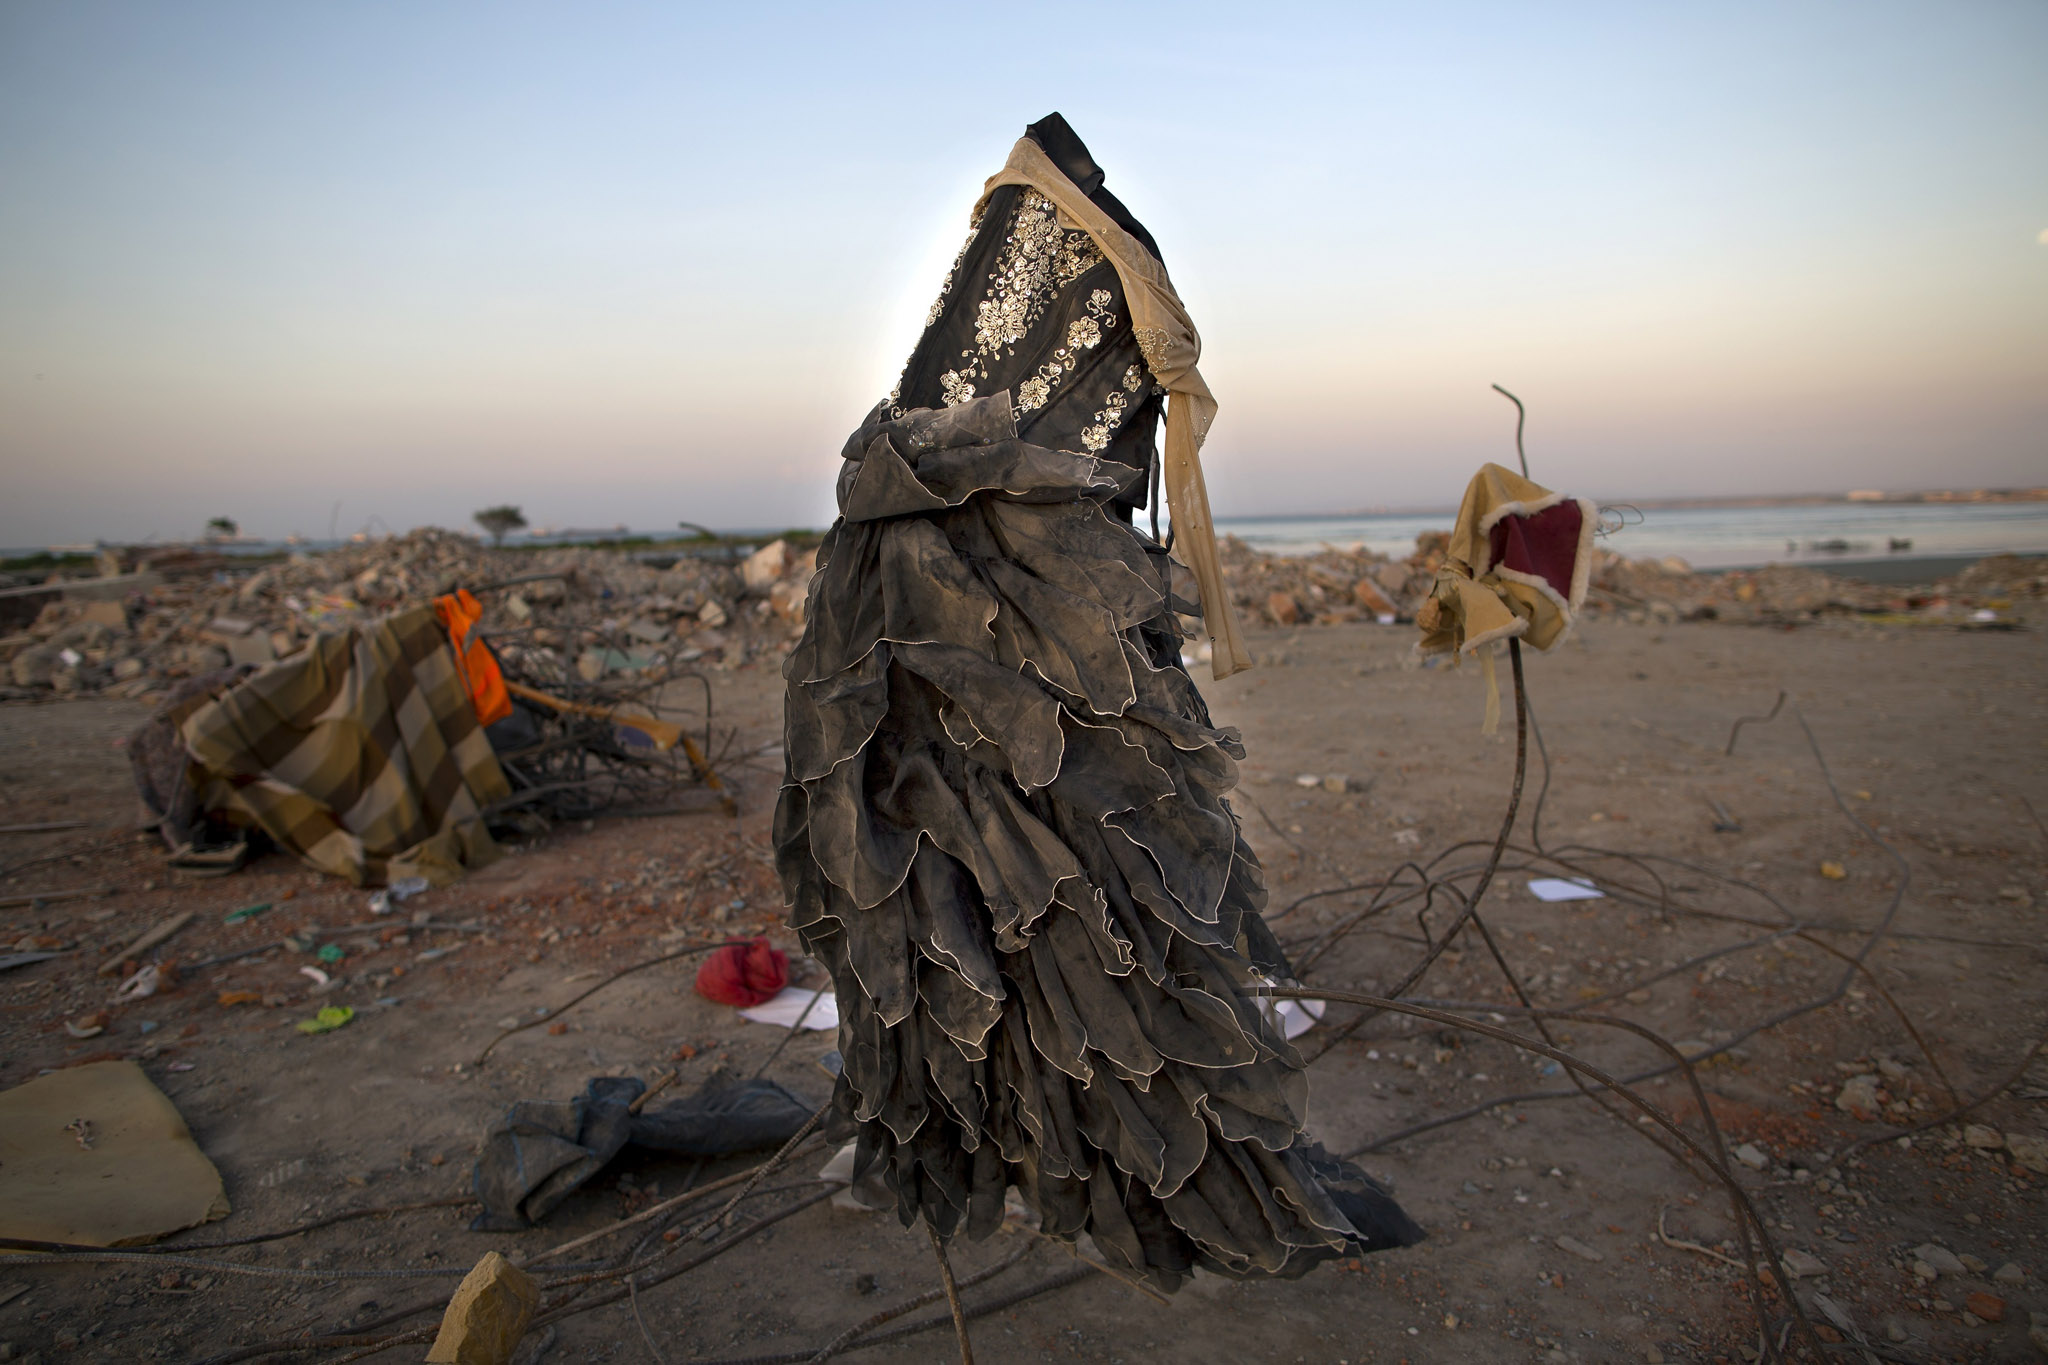 A dress hangs from twisted metal as residents comb through a post-earthquake debris field, salvaging recyclable material, in Manta, Ecuador, Wednesday, April 20, 2016. Ecuadoreans began burying loved ones felled by the country's deadliest earthquake in decades, while hopes faded that more survivors will be found. (AP Photo/Rodrigo Abd)